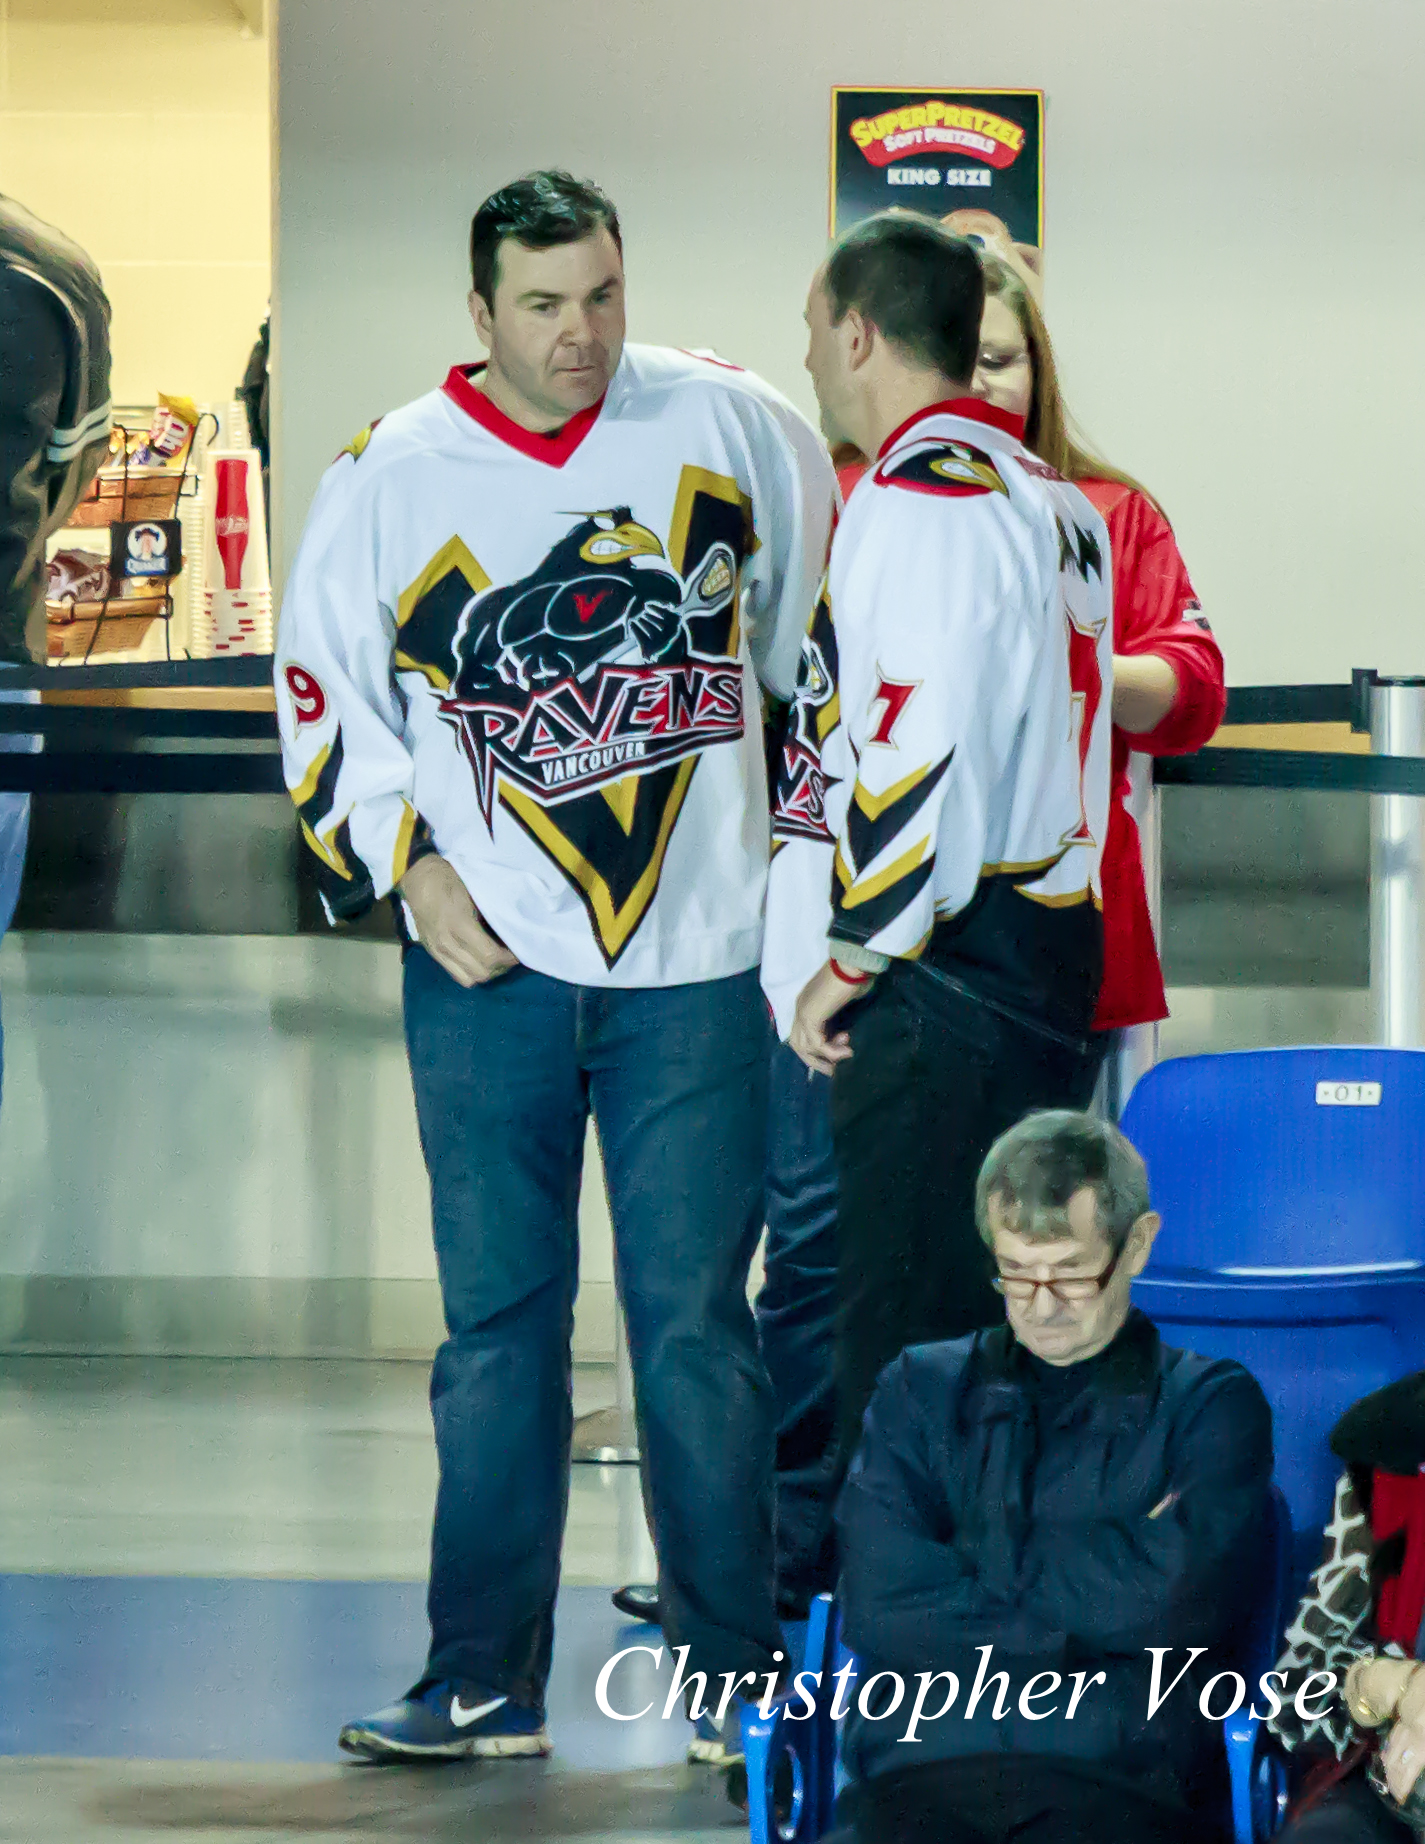 2014-01-17 Vancouver Ravens Supporters.jpg